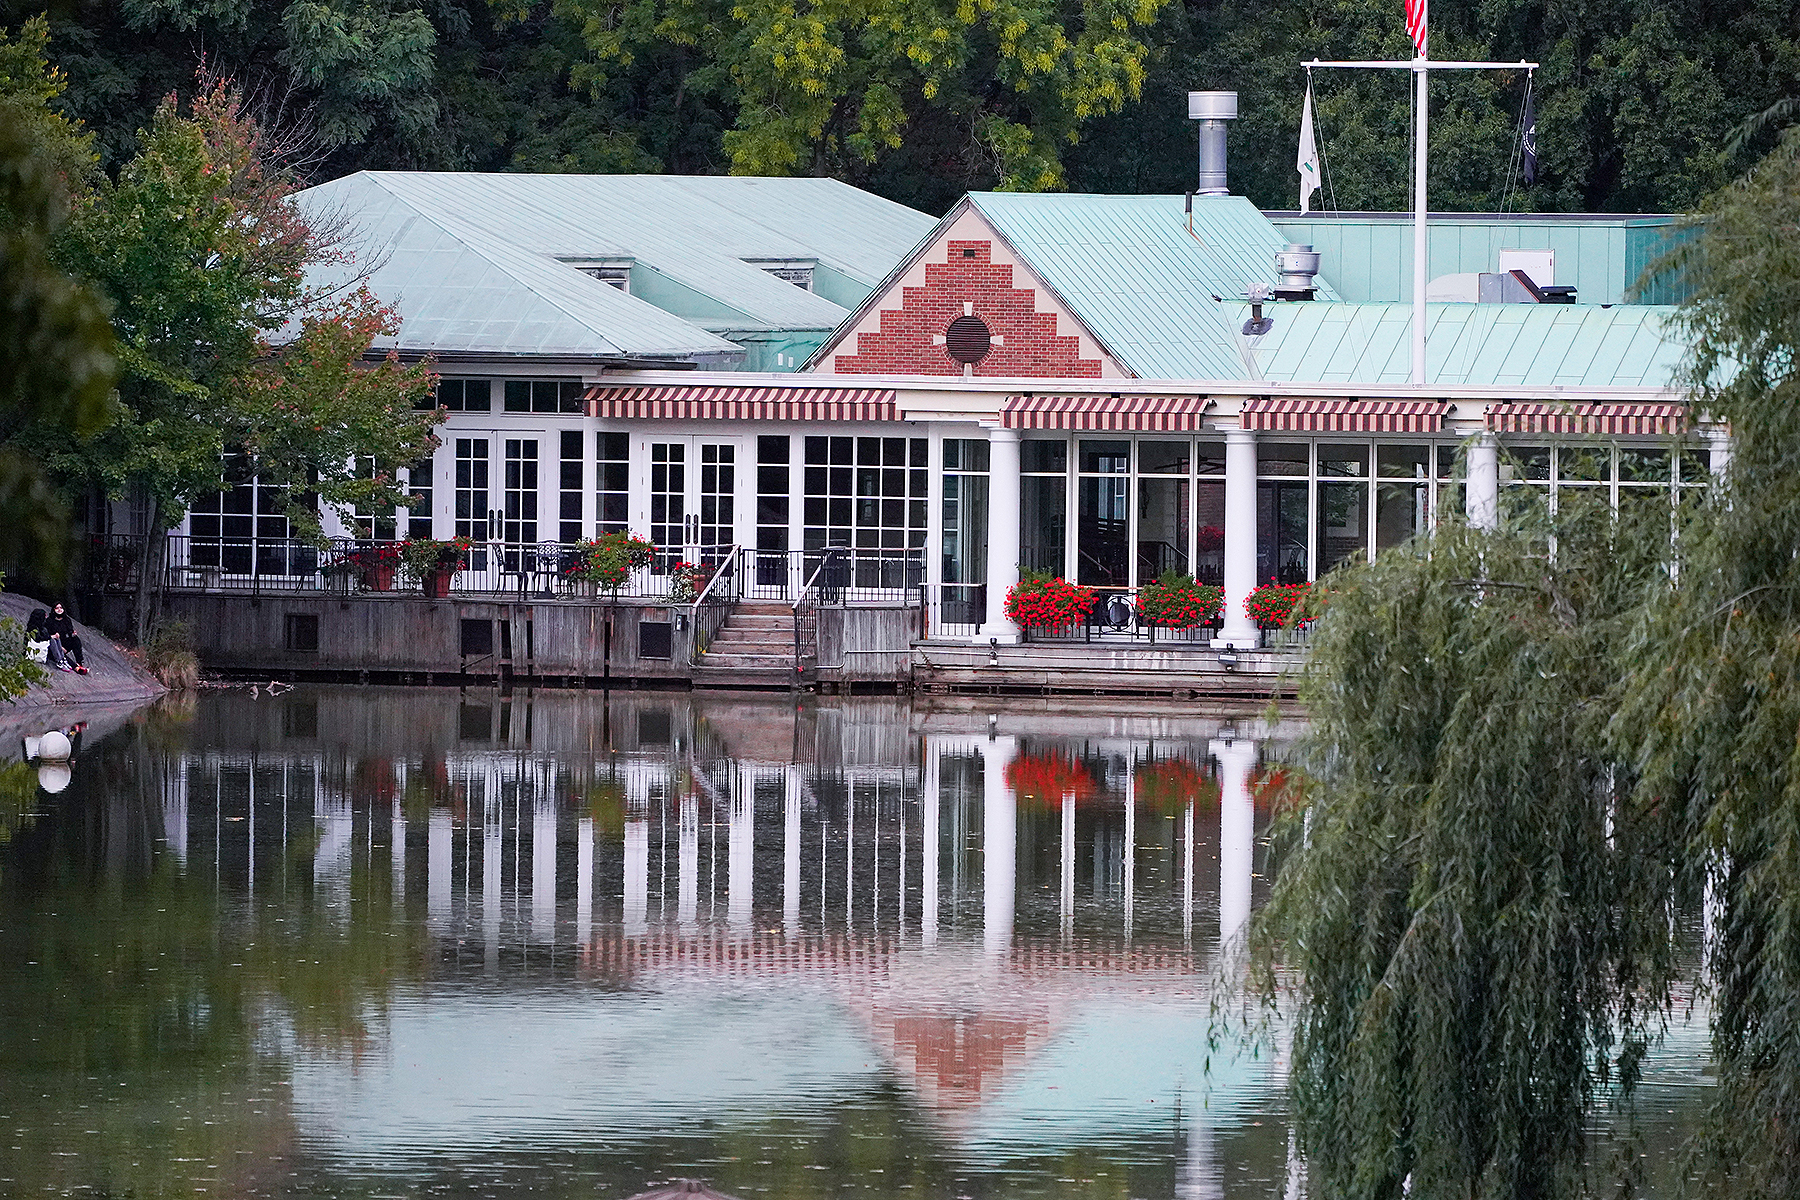 A view of the Central Park's historic Loeb Boathouse restaurant.